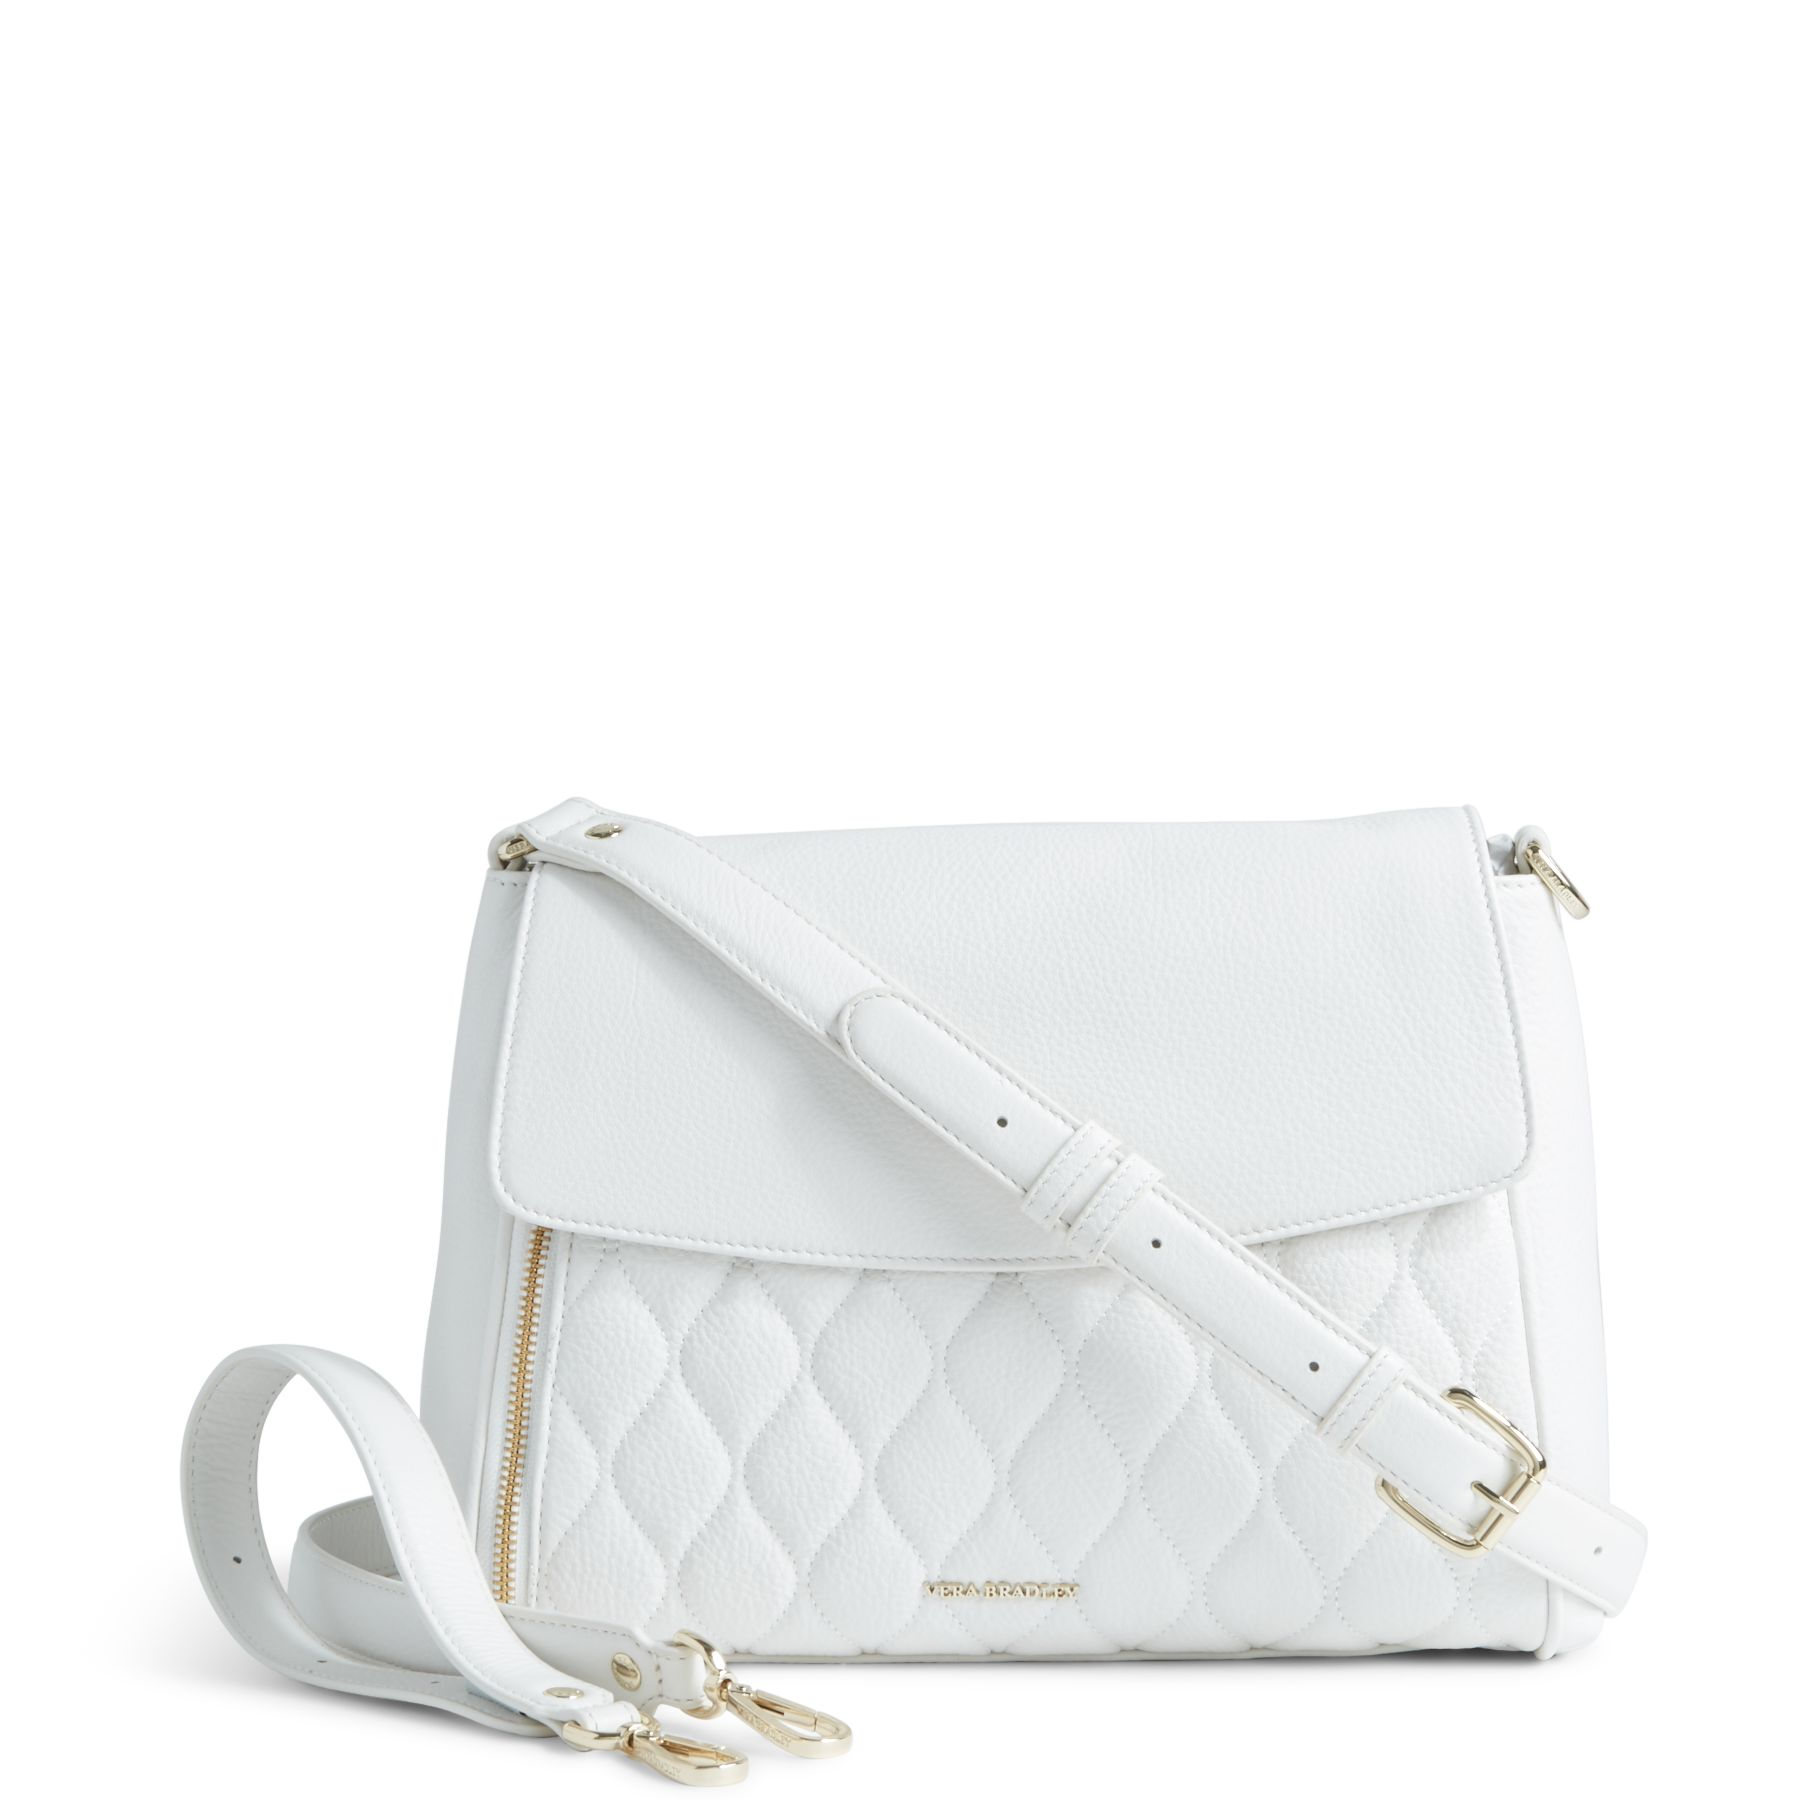 Vera Bradley Quilted Leather Cara Convertible Bag In White